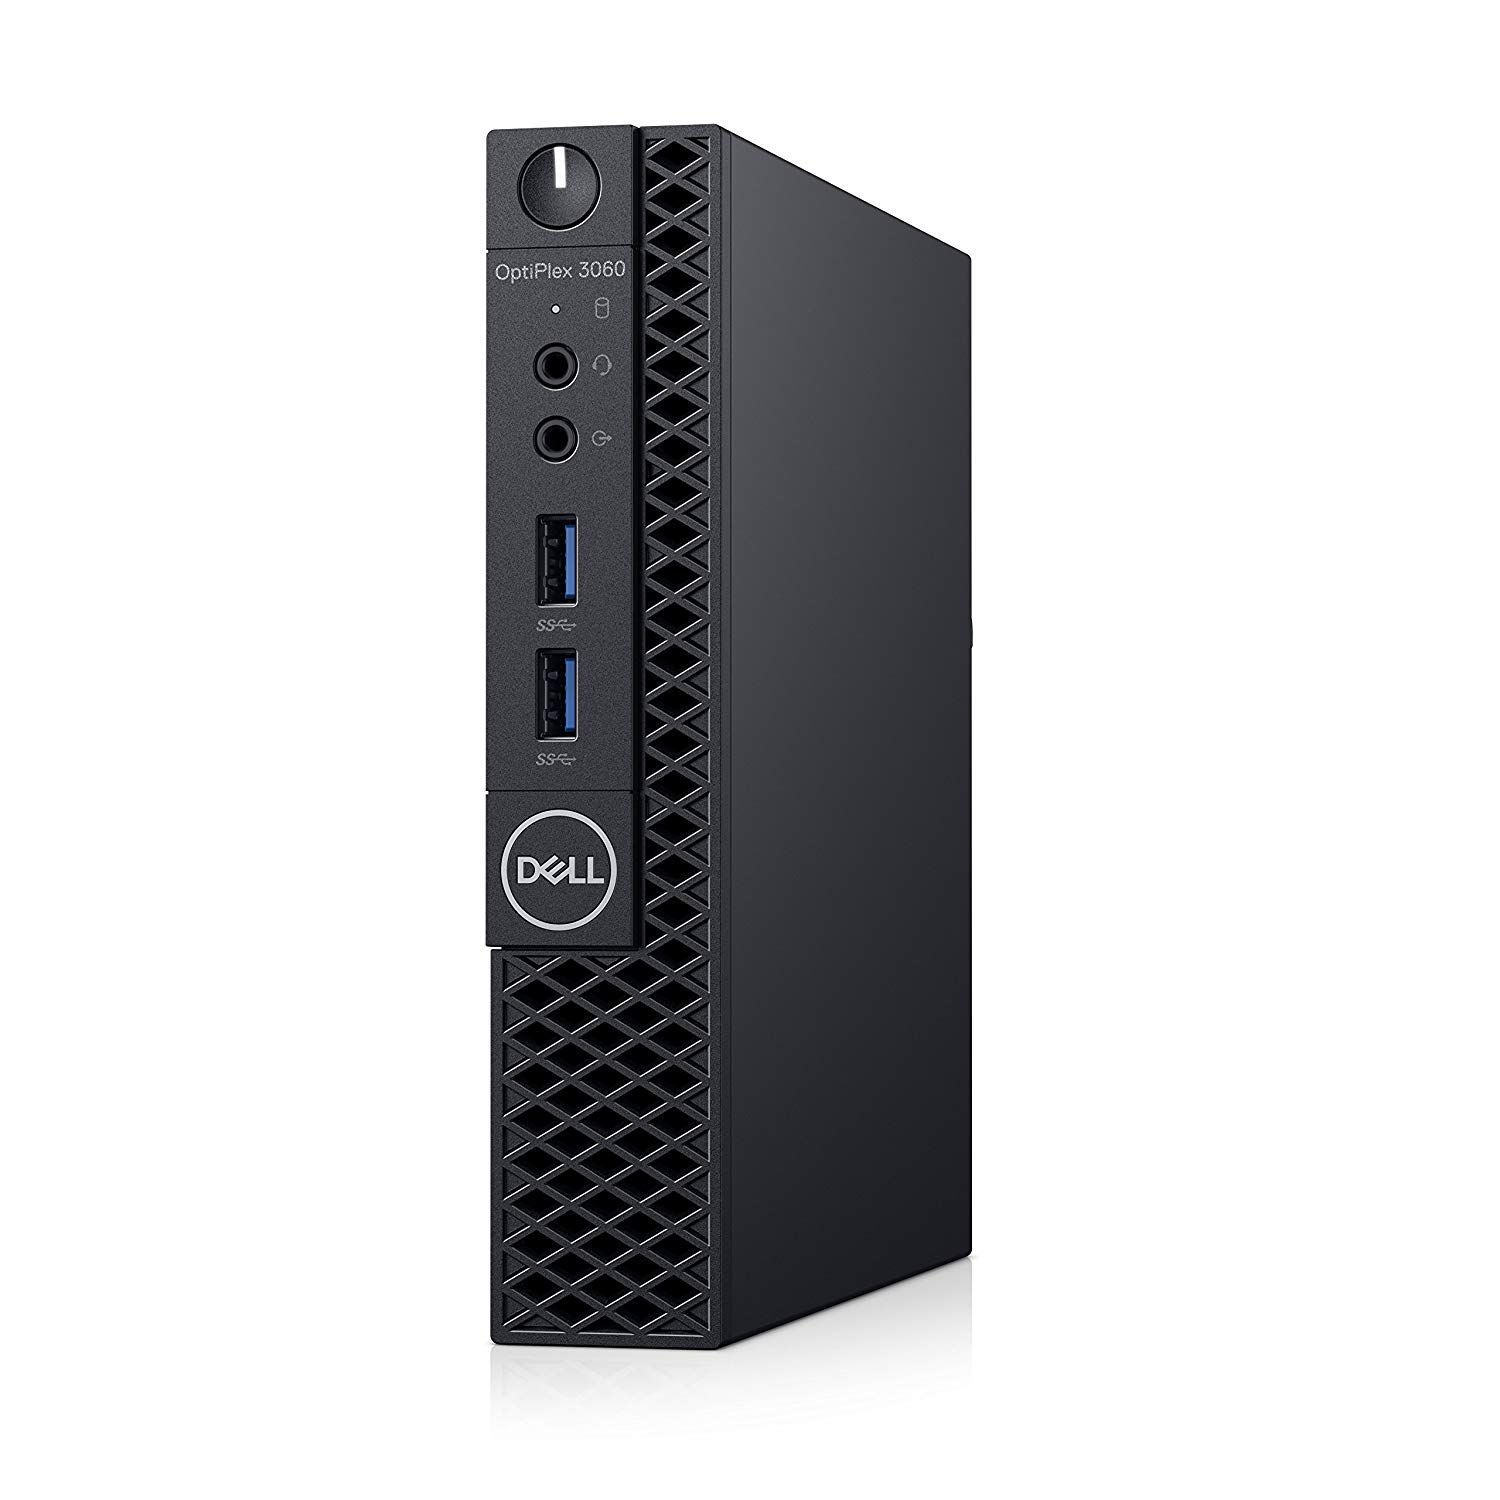 Dell Opti 3060 i3 4GB 128GB Mini PC